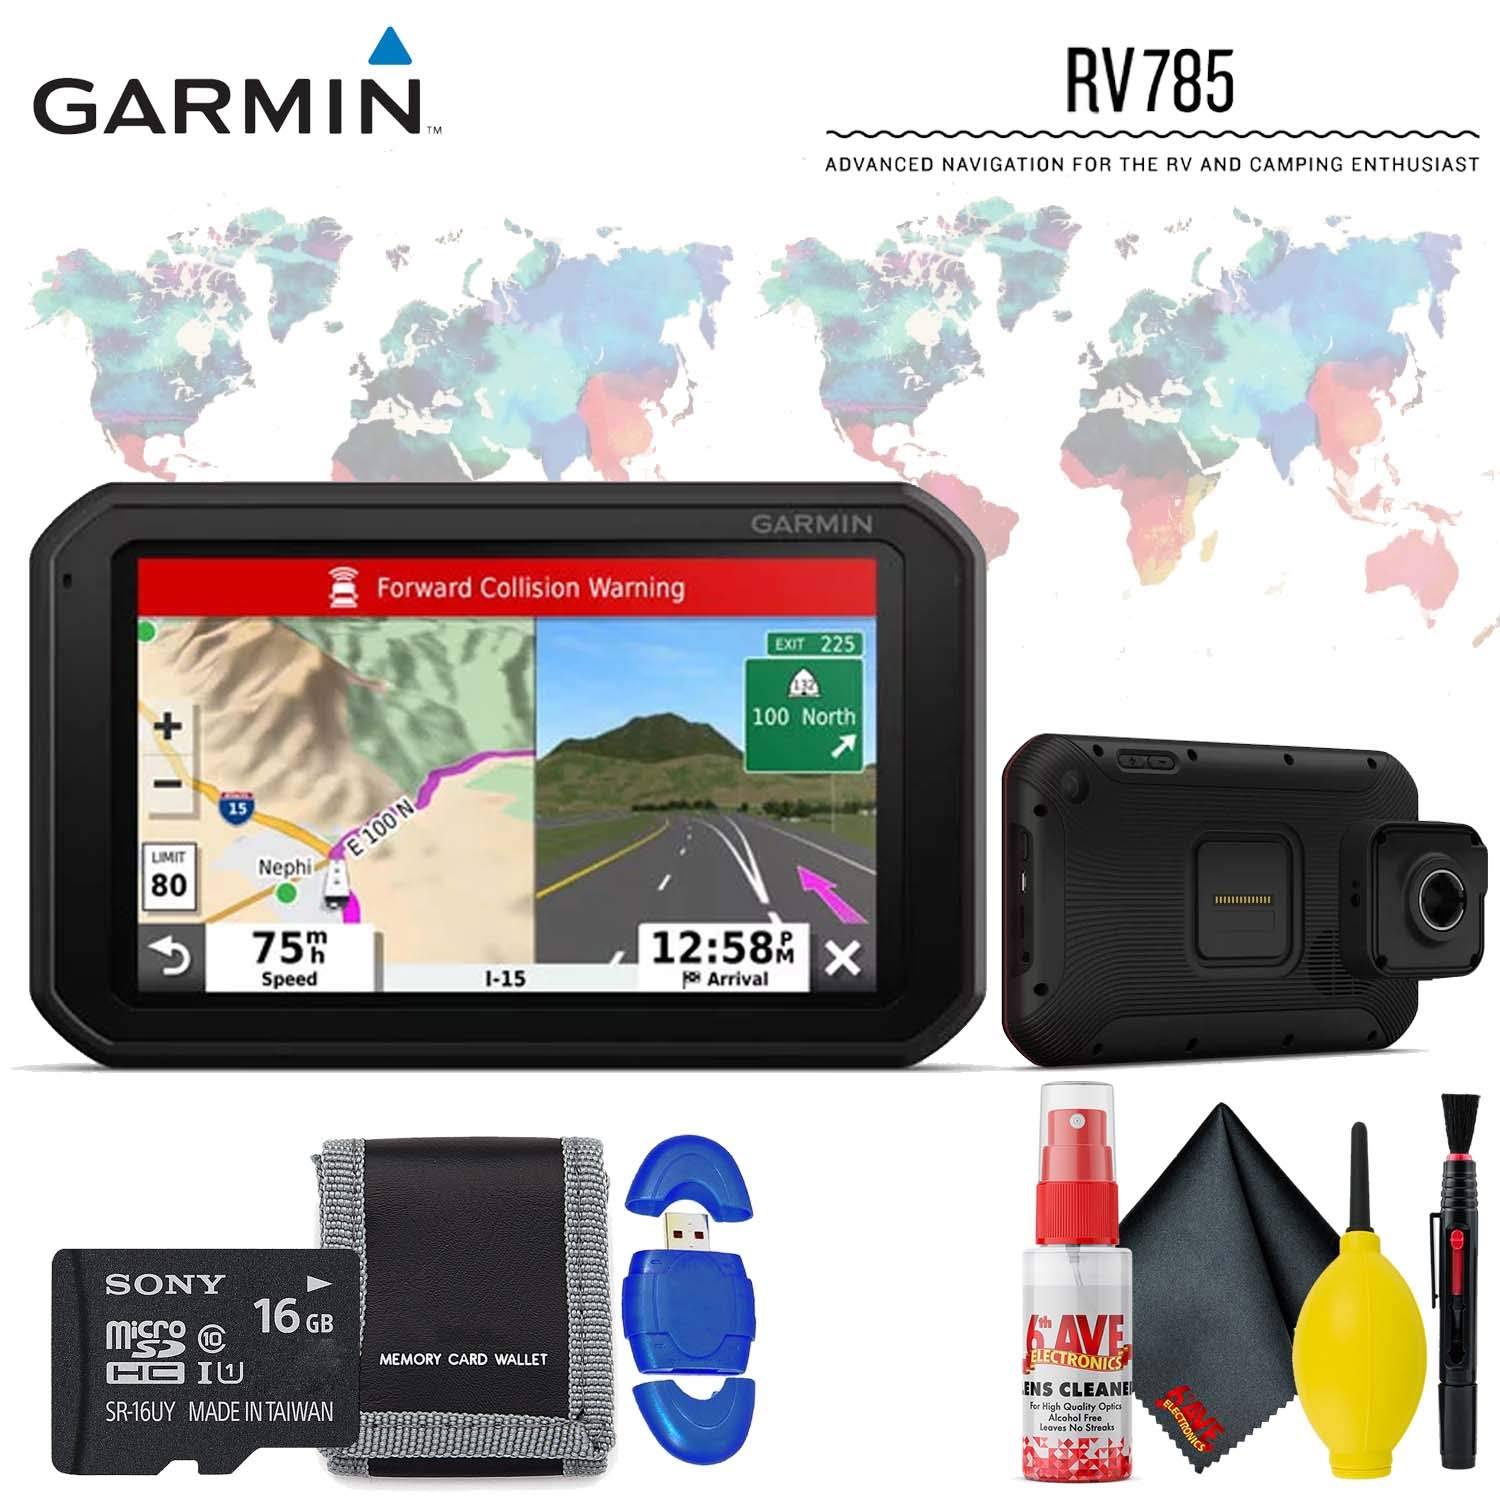 Garmin RV 785 & Traffic, Advanced GPS Navigator for RVs with Built-in Dash Cam, 7'' Touch Display and Voice-Activated Navigation Standard Accessory Kit by Garmin